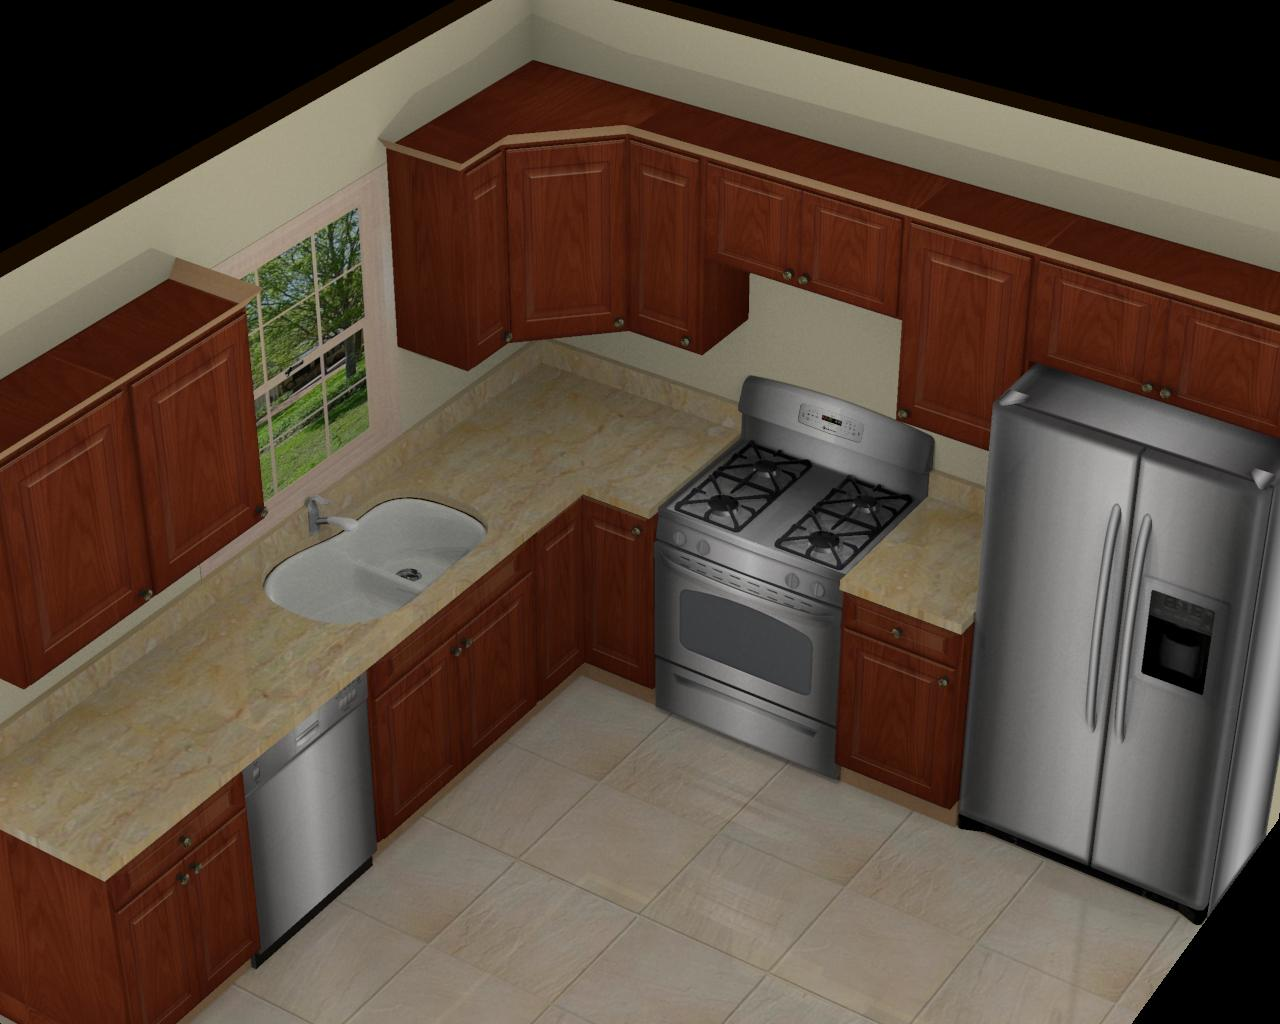 Foundation dezin decor 3d kitchen model design for 6 ft kitchen ideas